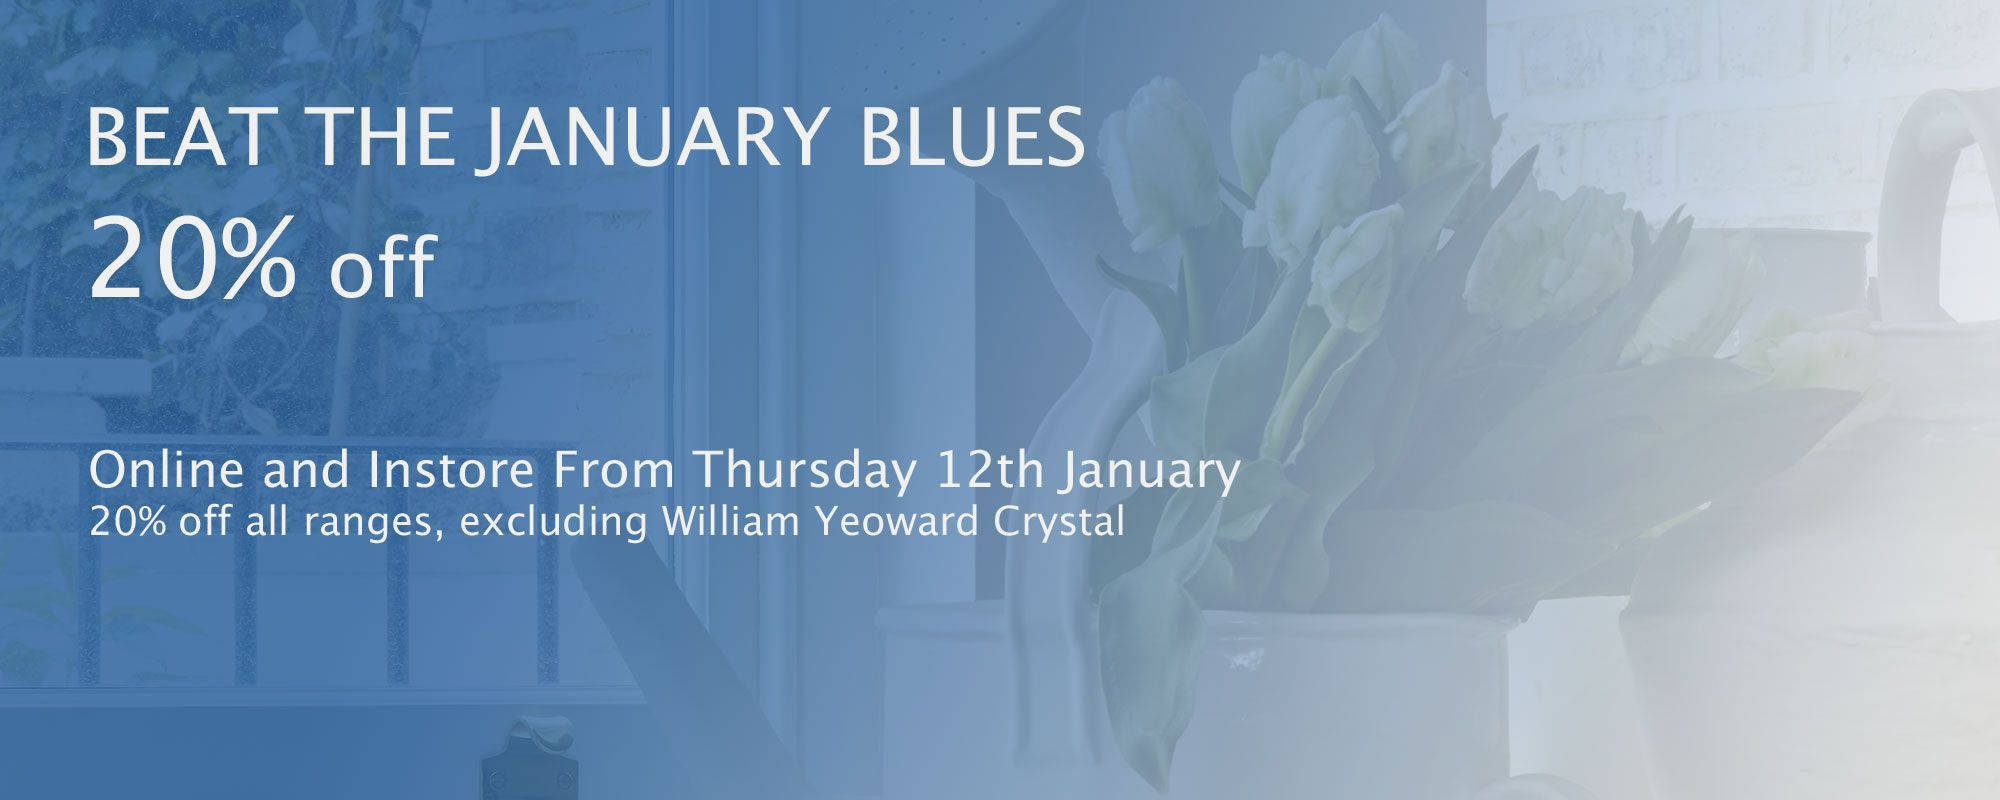 Beat the January blues with 20% off